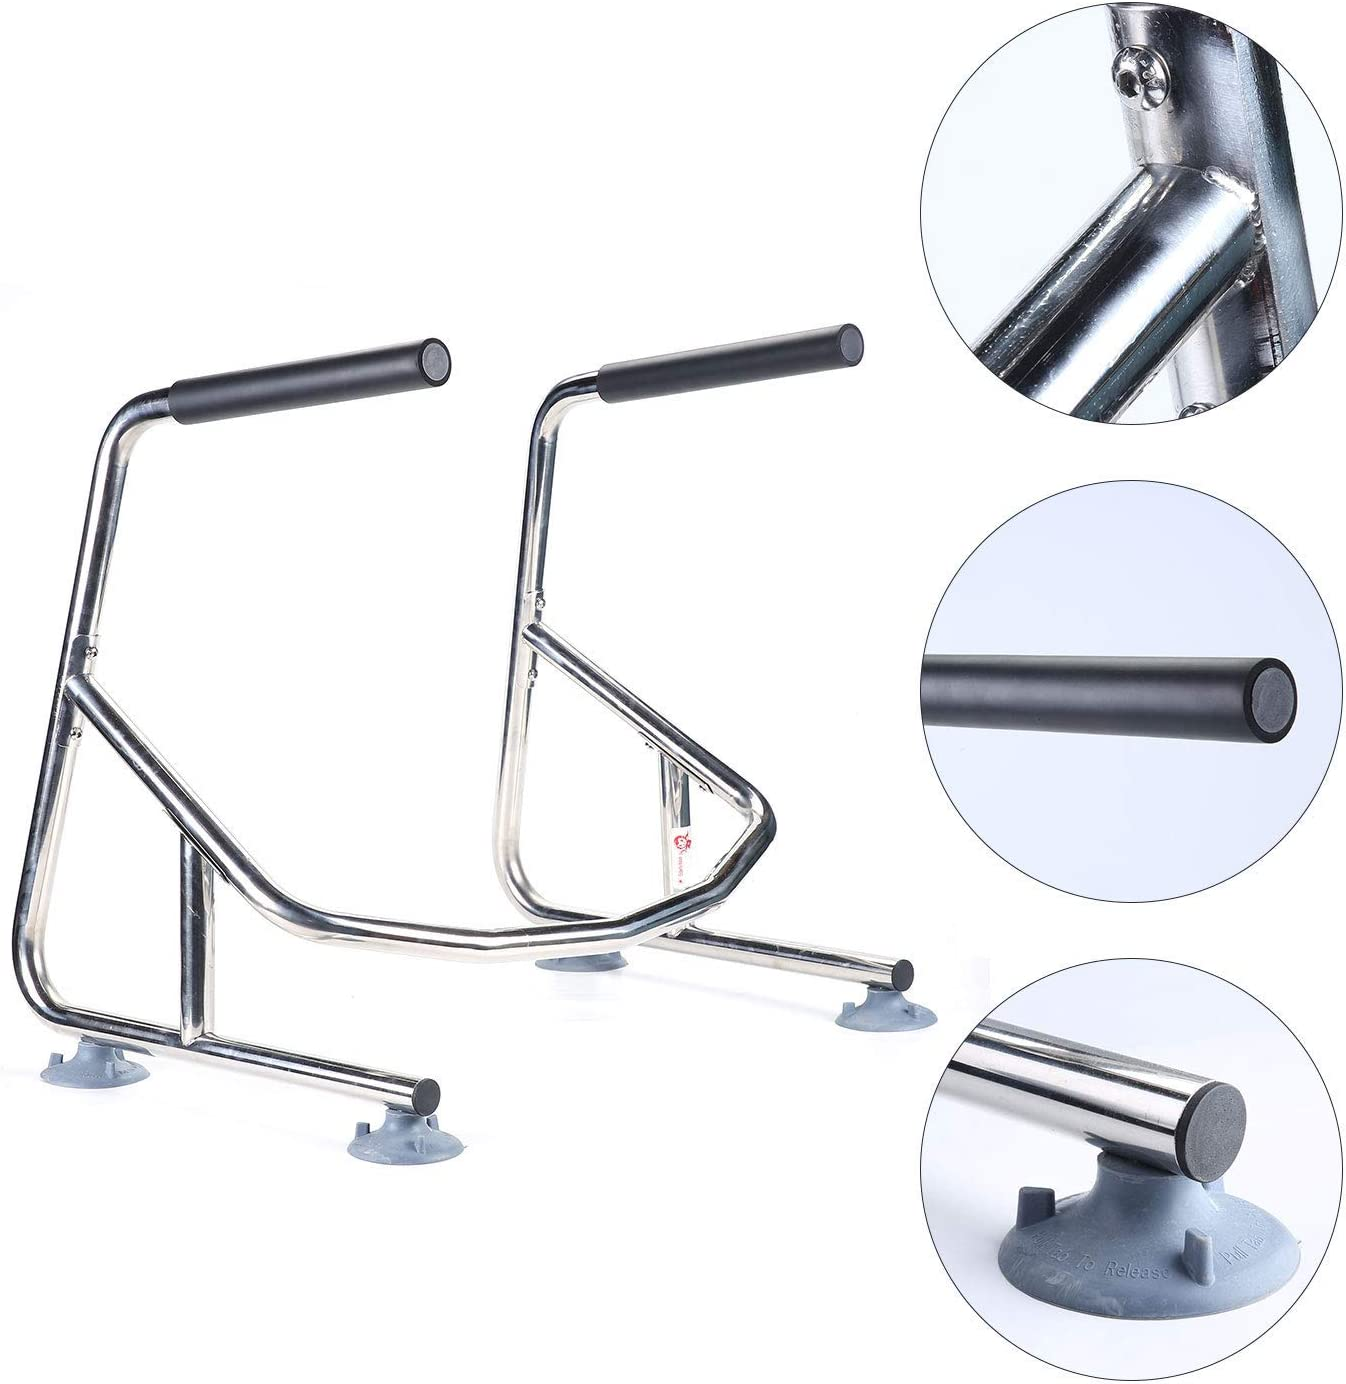 Elderly Assis Toilet Safety Rails Safety Frame Toilet with Easy Installation Bathroom Toilet Seat for Seniors Arthritis Sufferers Injured Surgery Recovery: Health & Personal Care